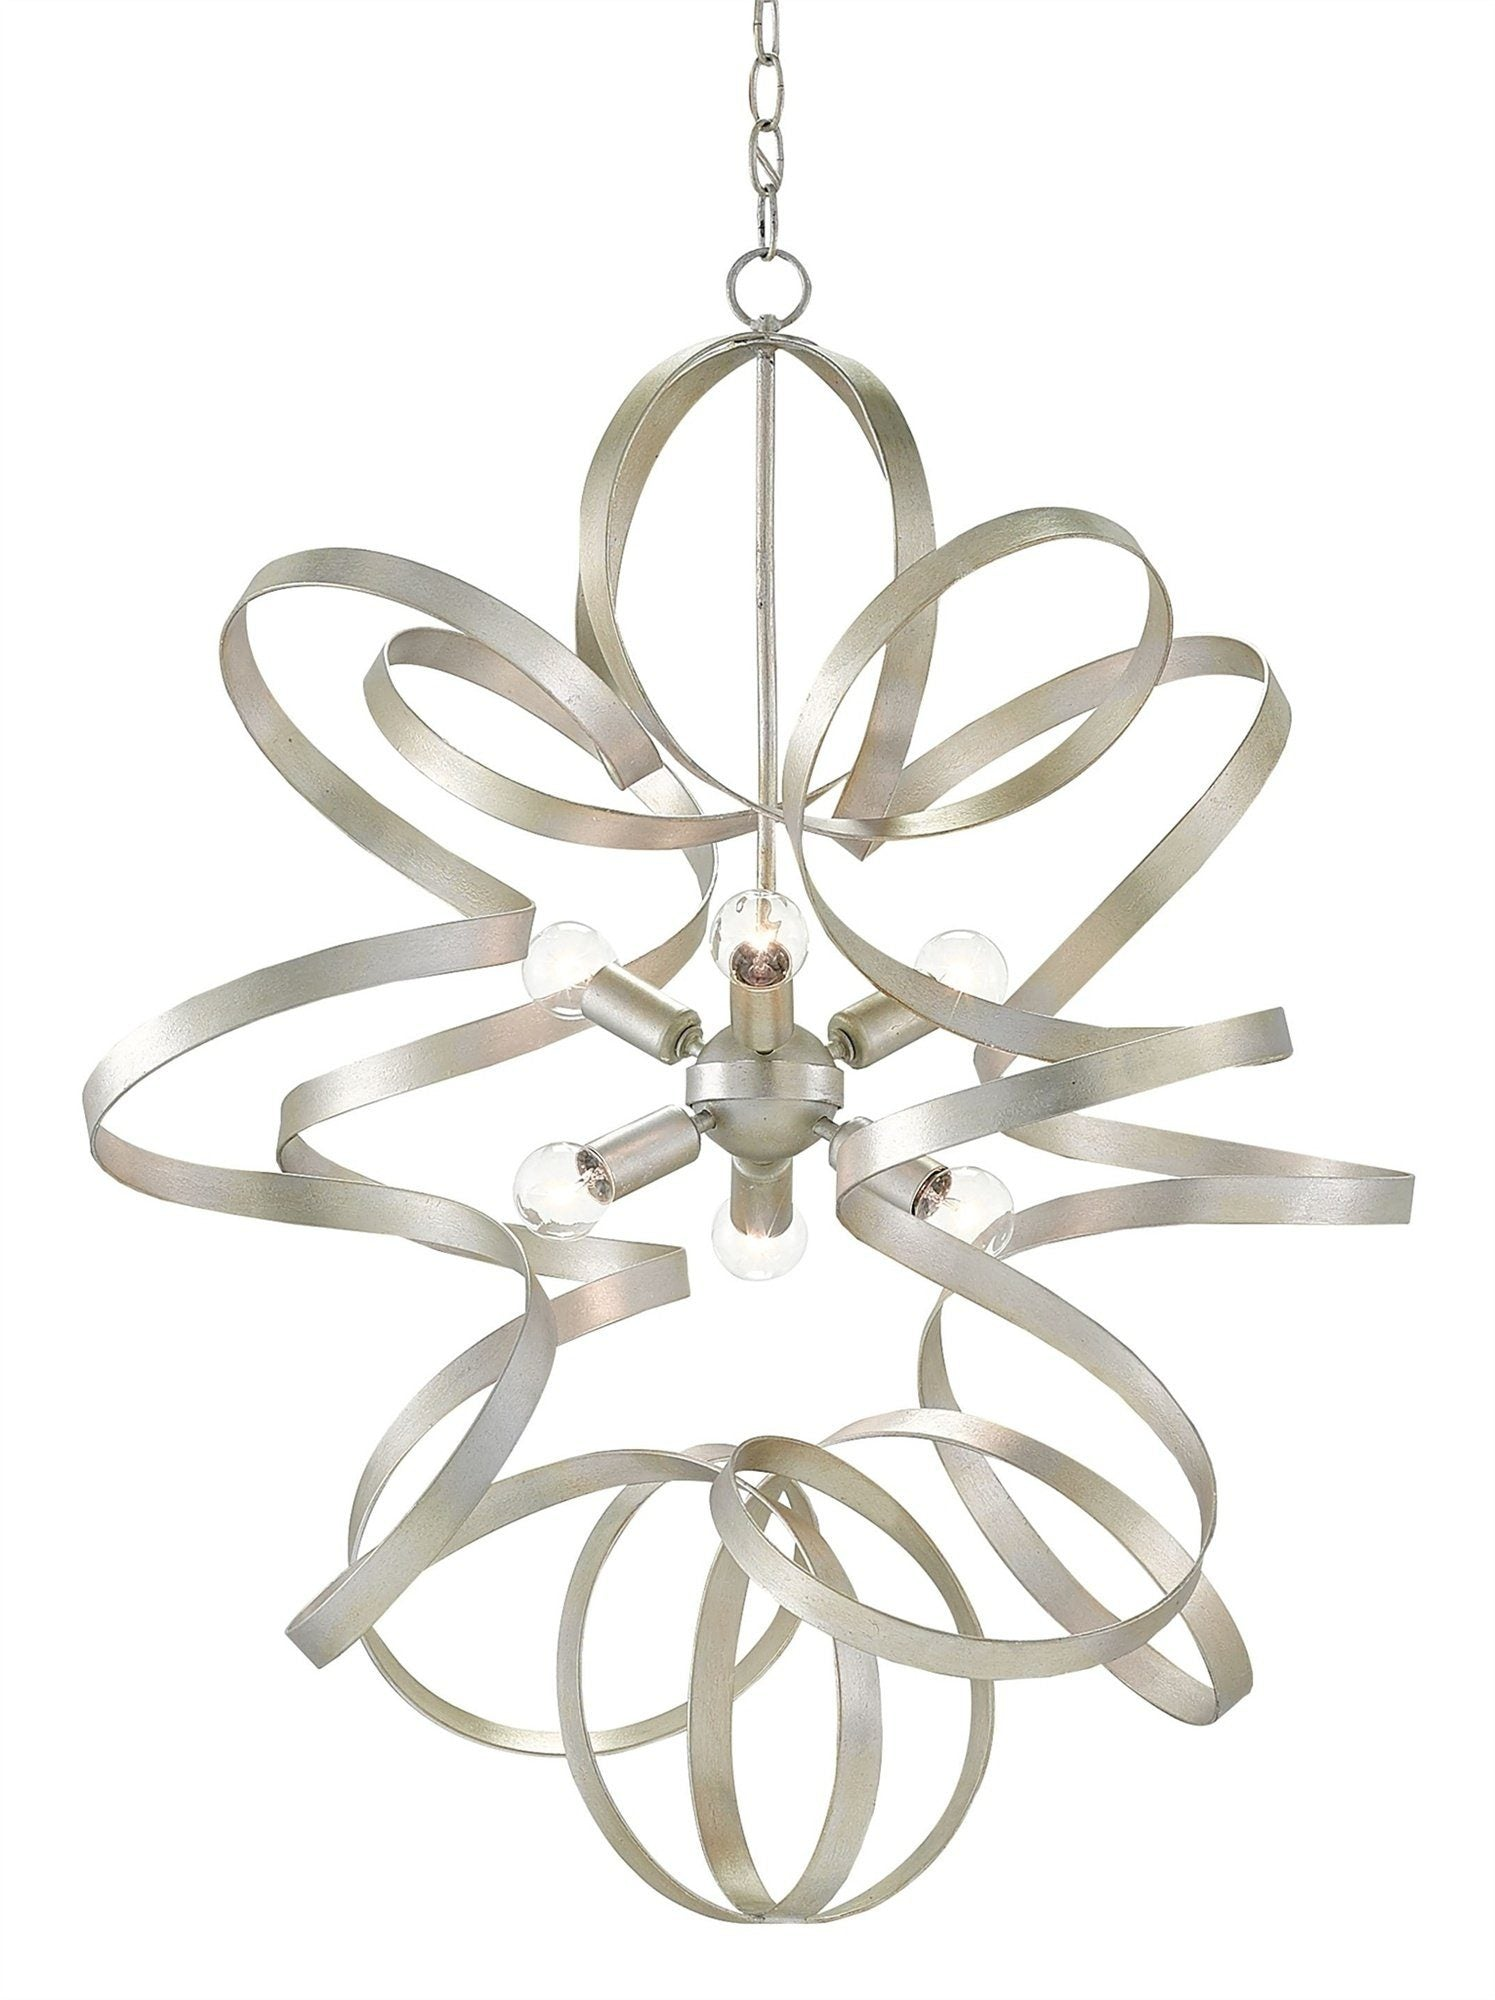 Currey and Company Lasso Chandelier 9000-0109 - LOVECUP